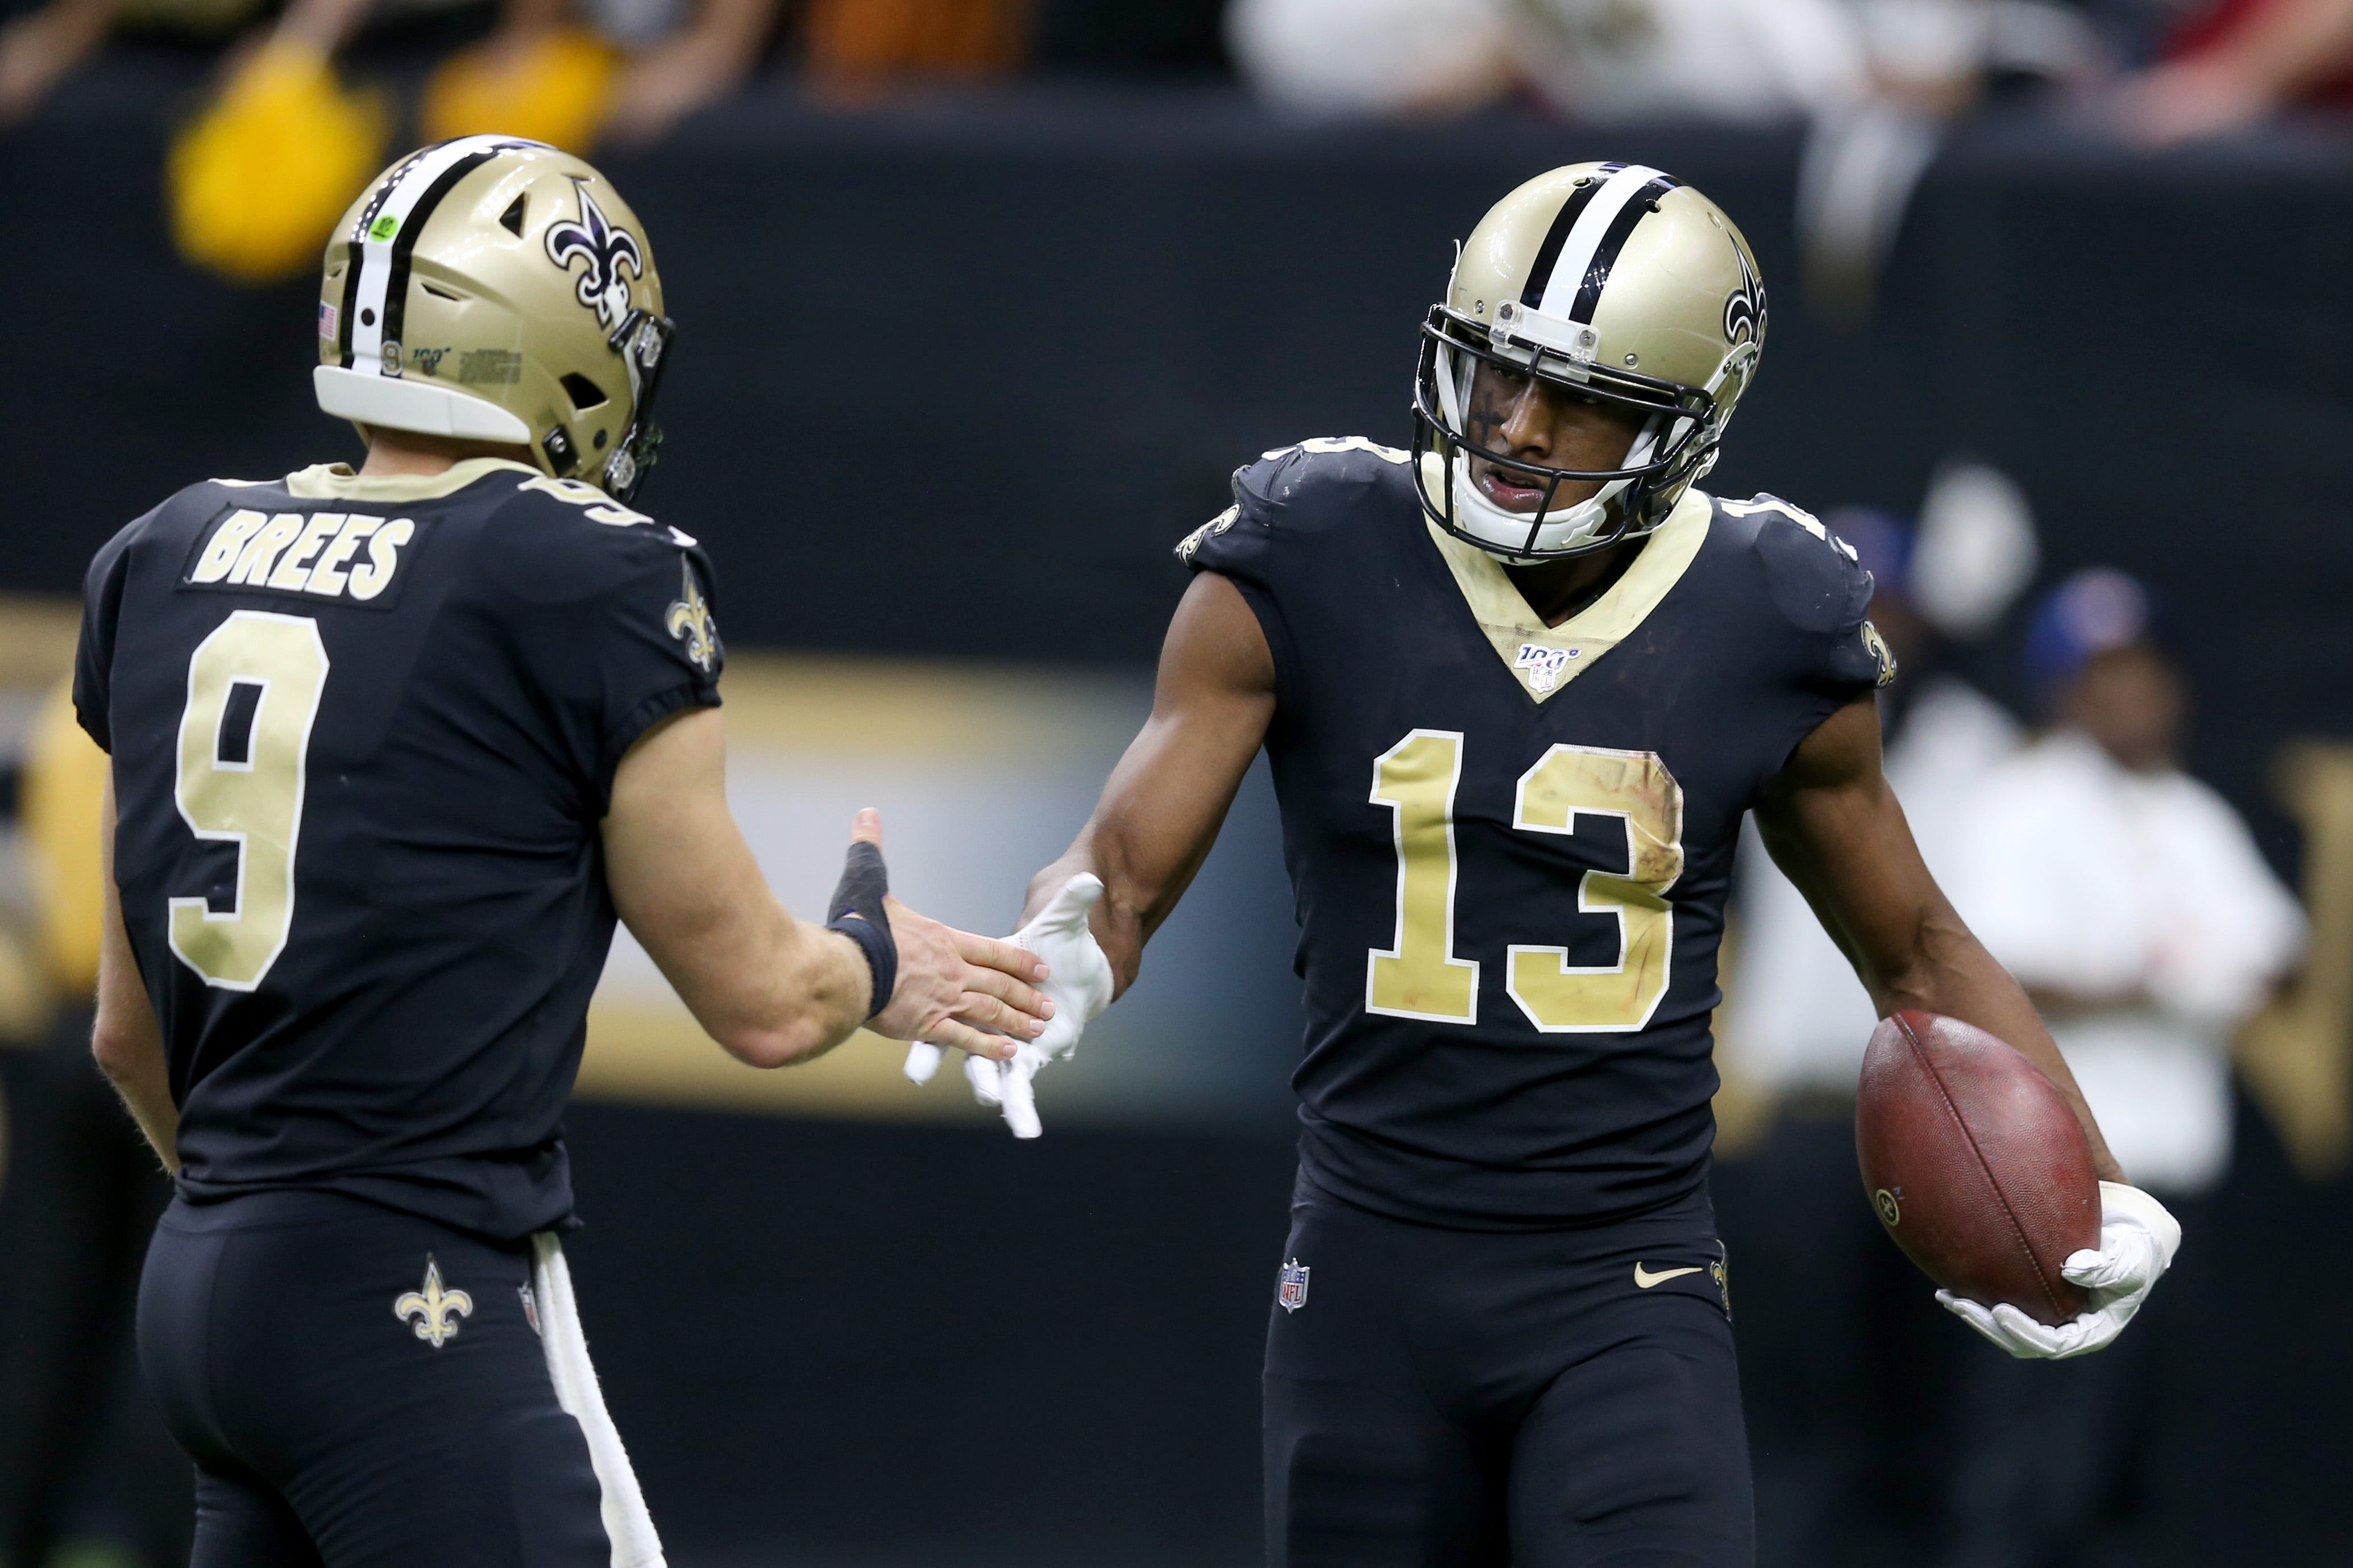 Report: Saints WR Michael Thomas had altercation with teammate, ruled out vs. Chargers